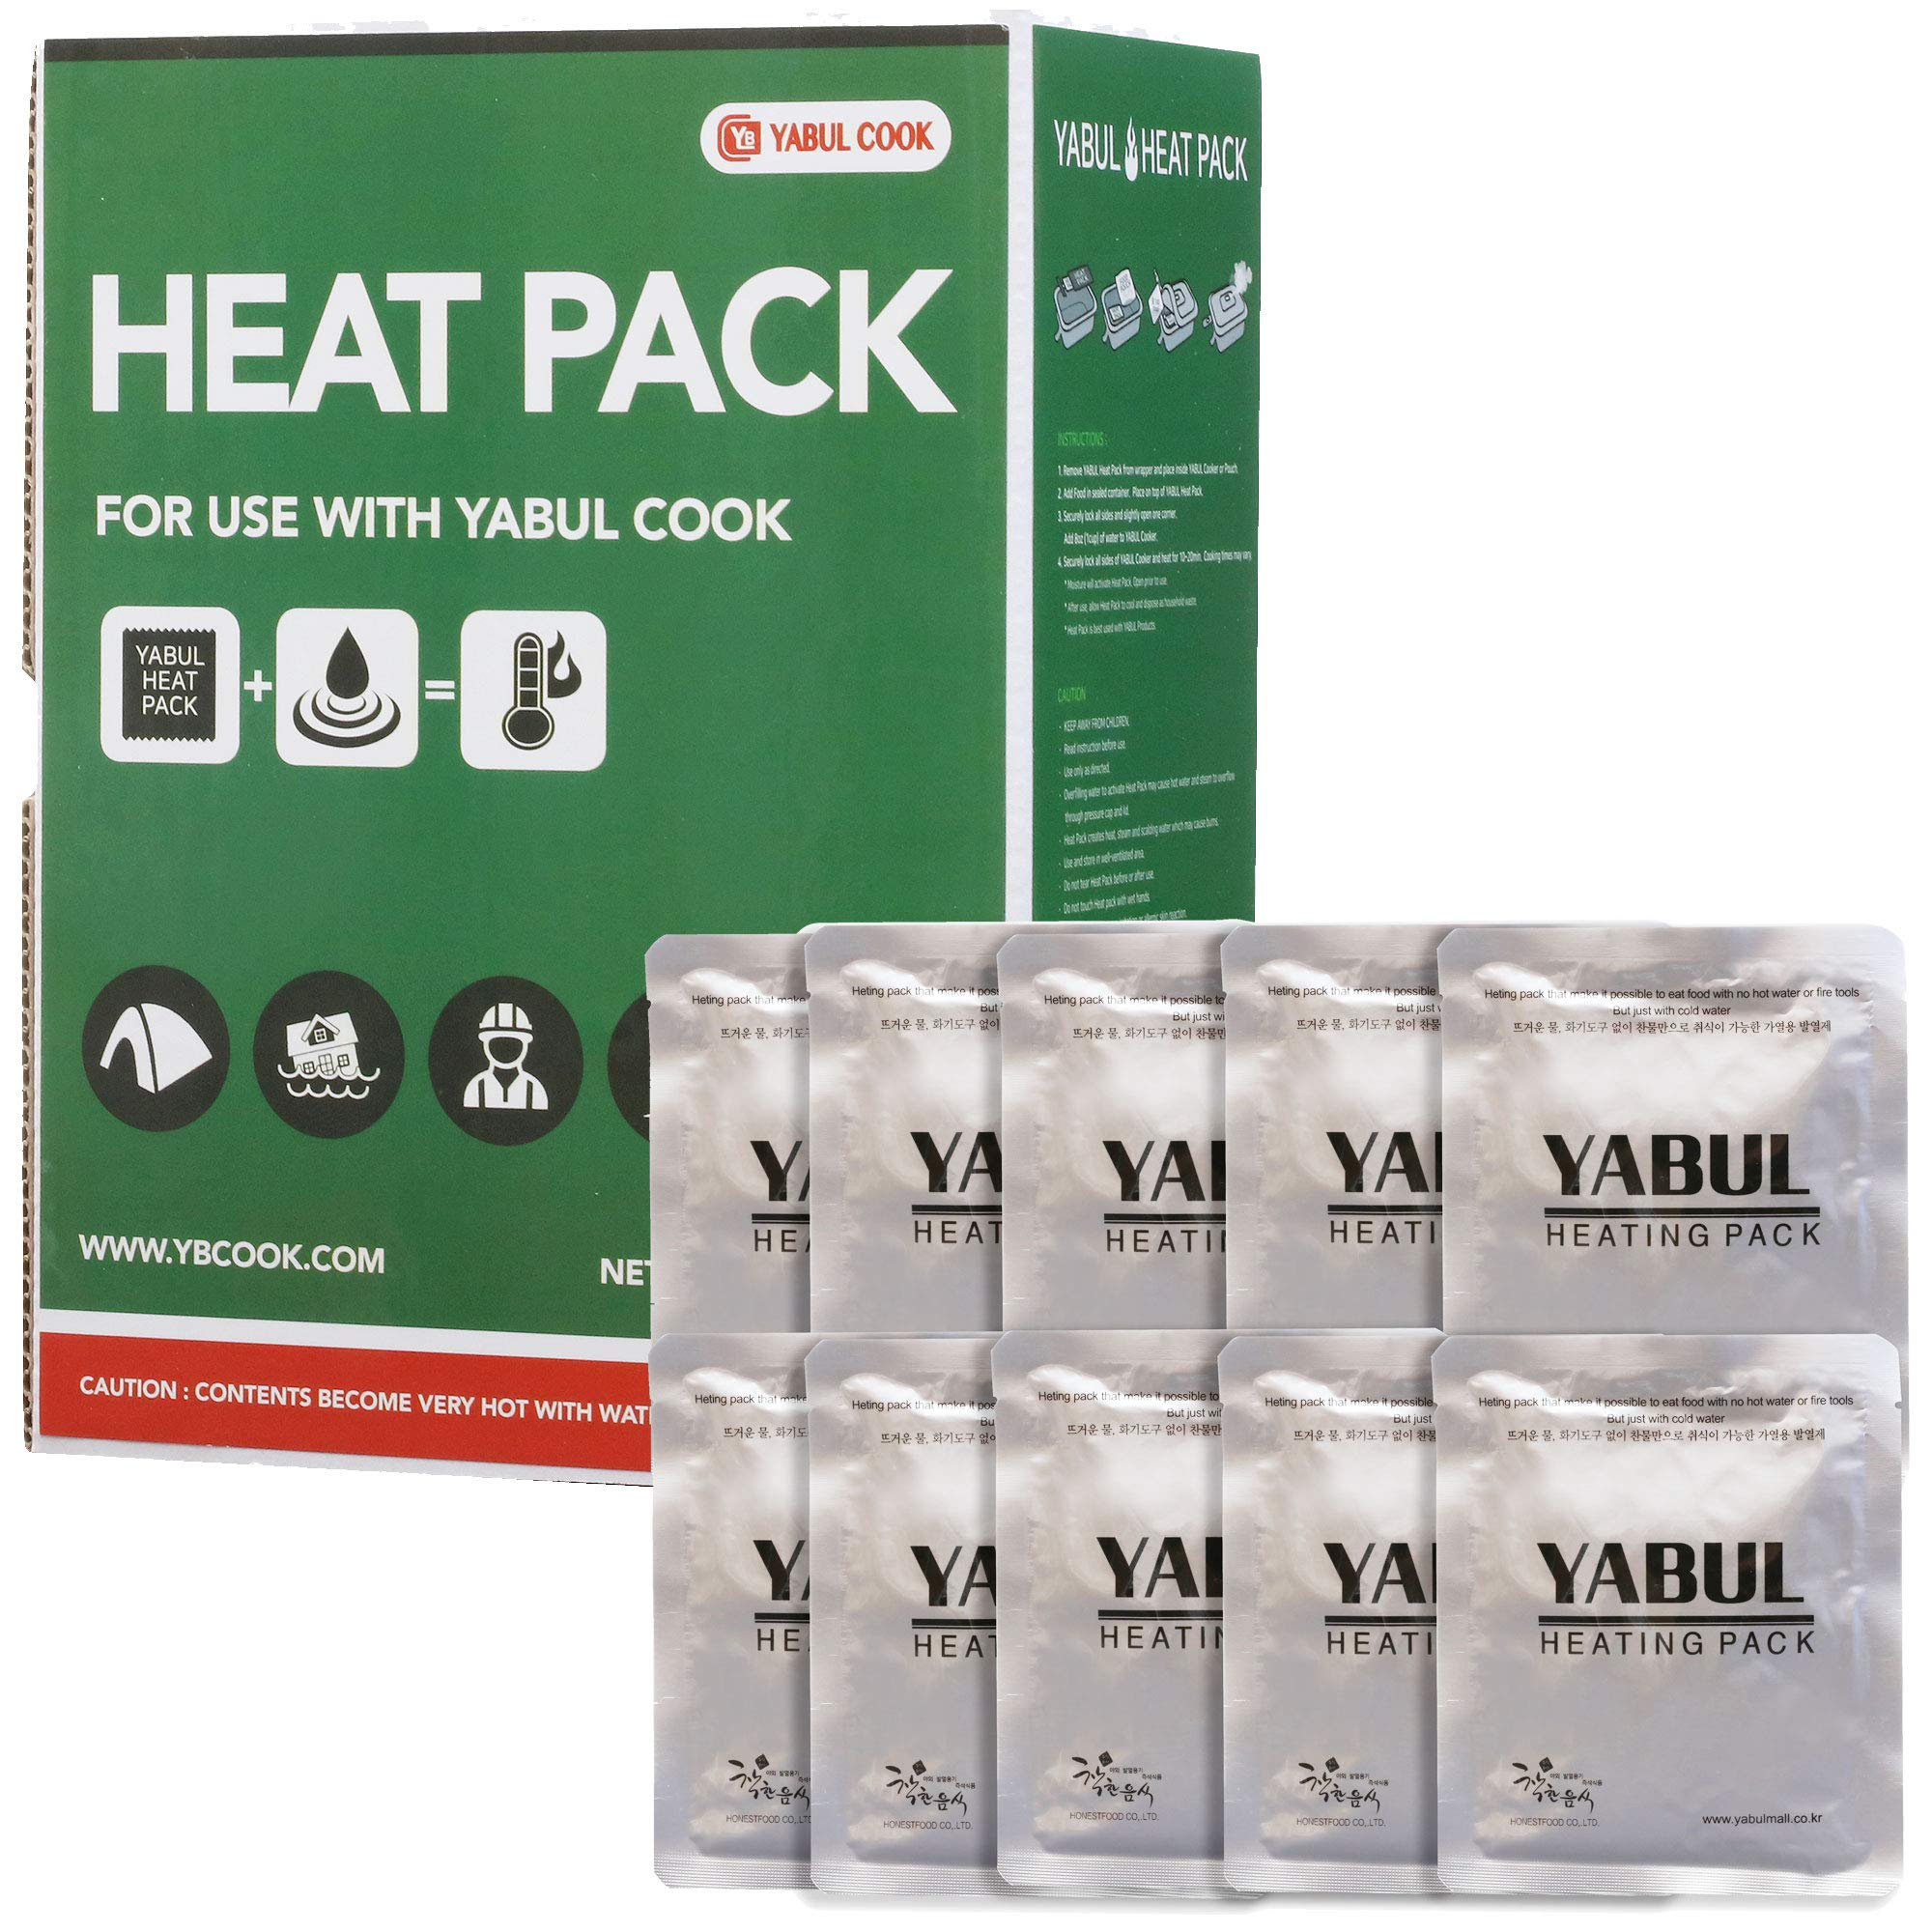 Yabul Large 80g Flameless Heater Heating Pack Set for Yabul Cooker - Safe Fuel to Heat Warm MRE Rations, Camping Foods Fast Anytime without Fire (Pack of 10) by Yabul